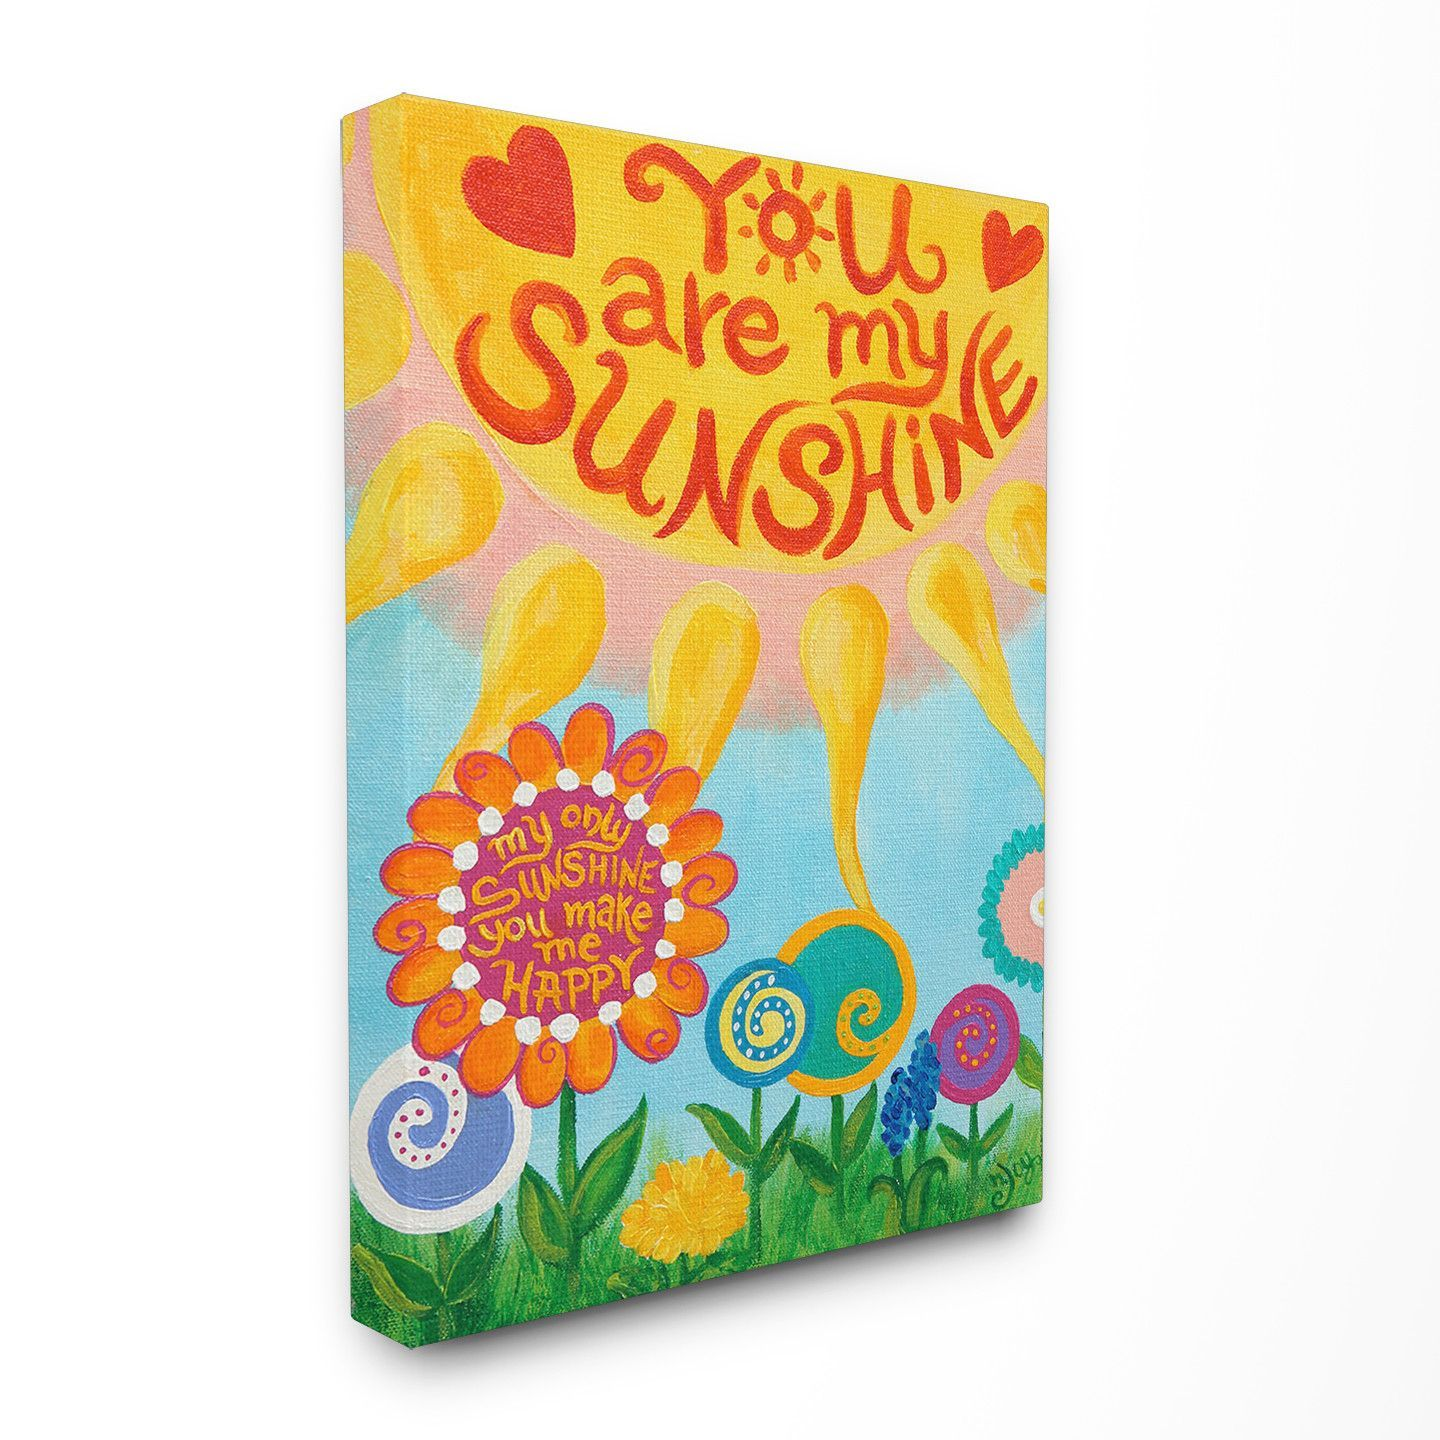 The Kids Room You Are My Sunshine Canvas Wall Art | Kids rooms ...